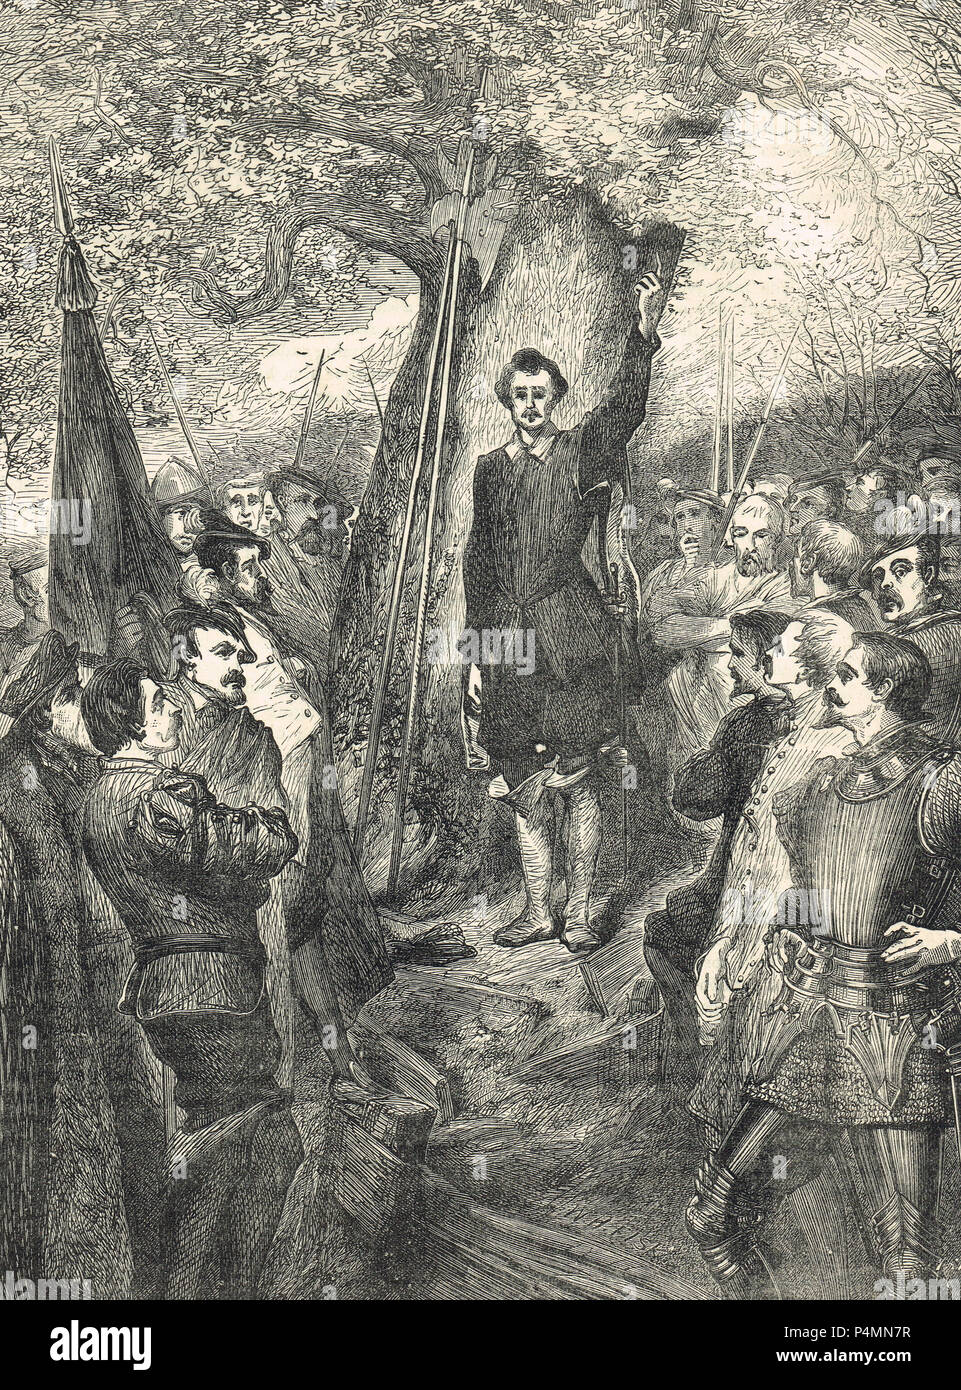 A meeting of the East Anglian rebels, Kett's Rebellion of 1549 Stock Photo